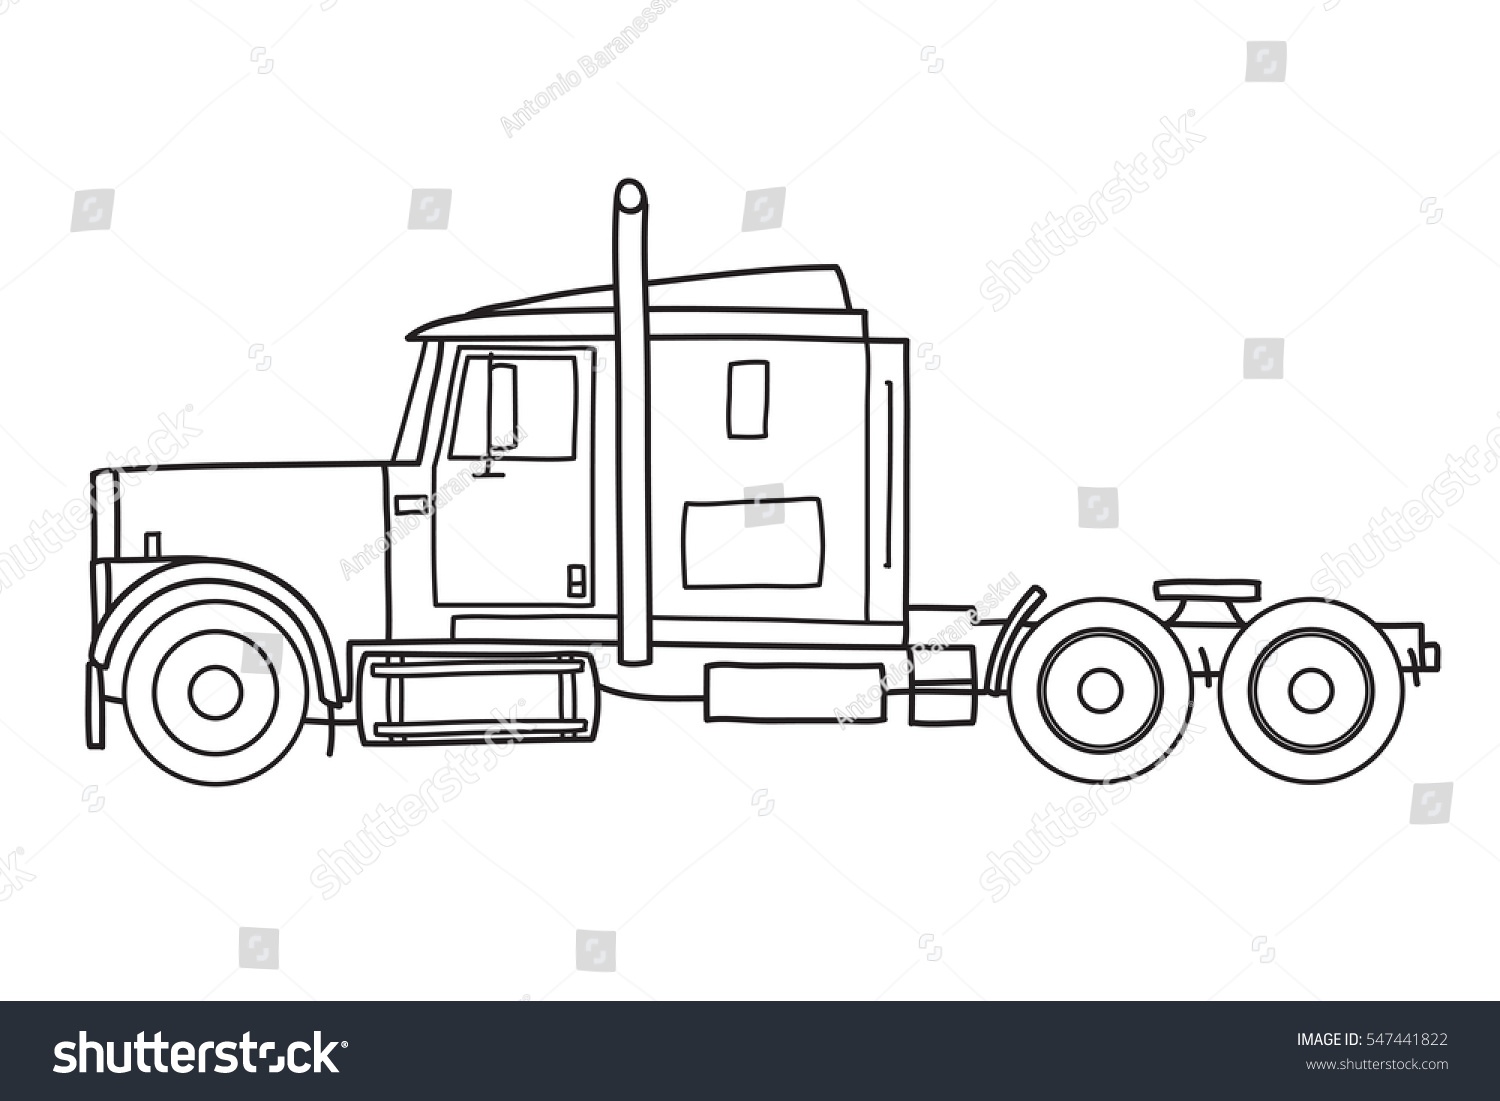 Old semi truck with sleeper towing engine transport american tractor side view vector